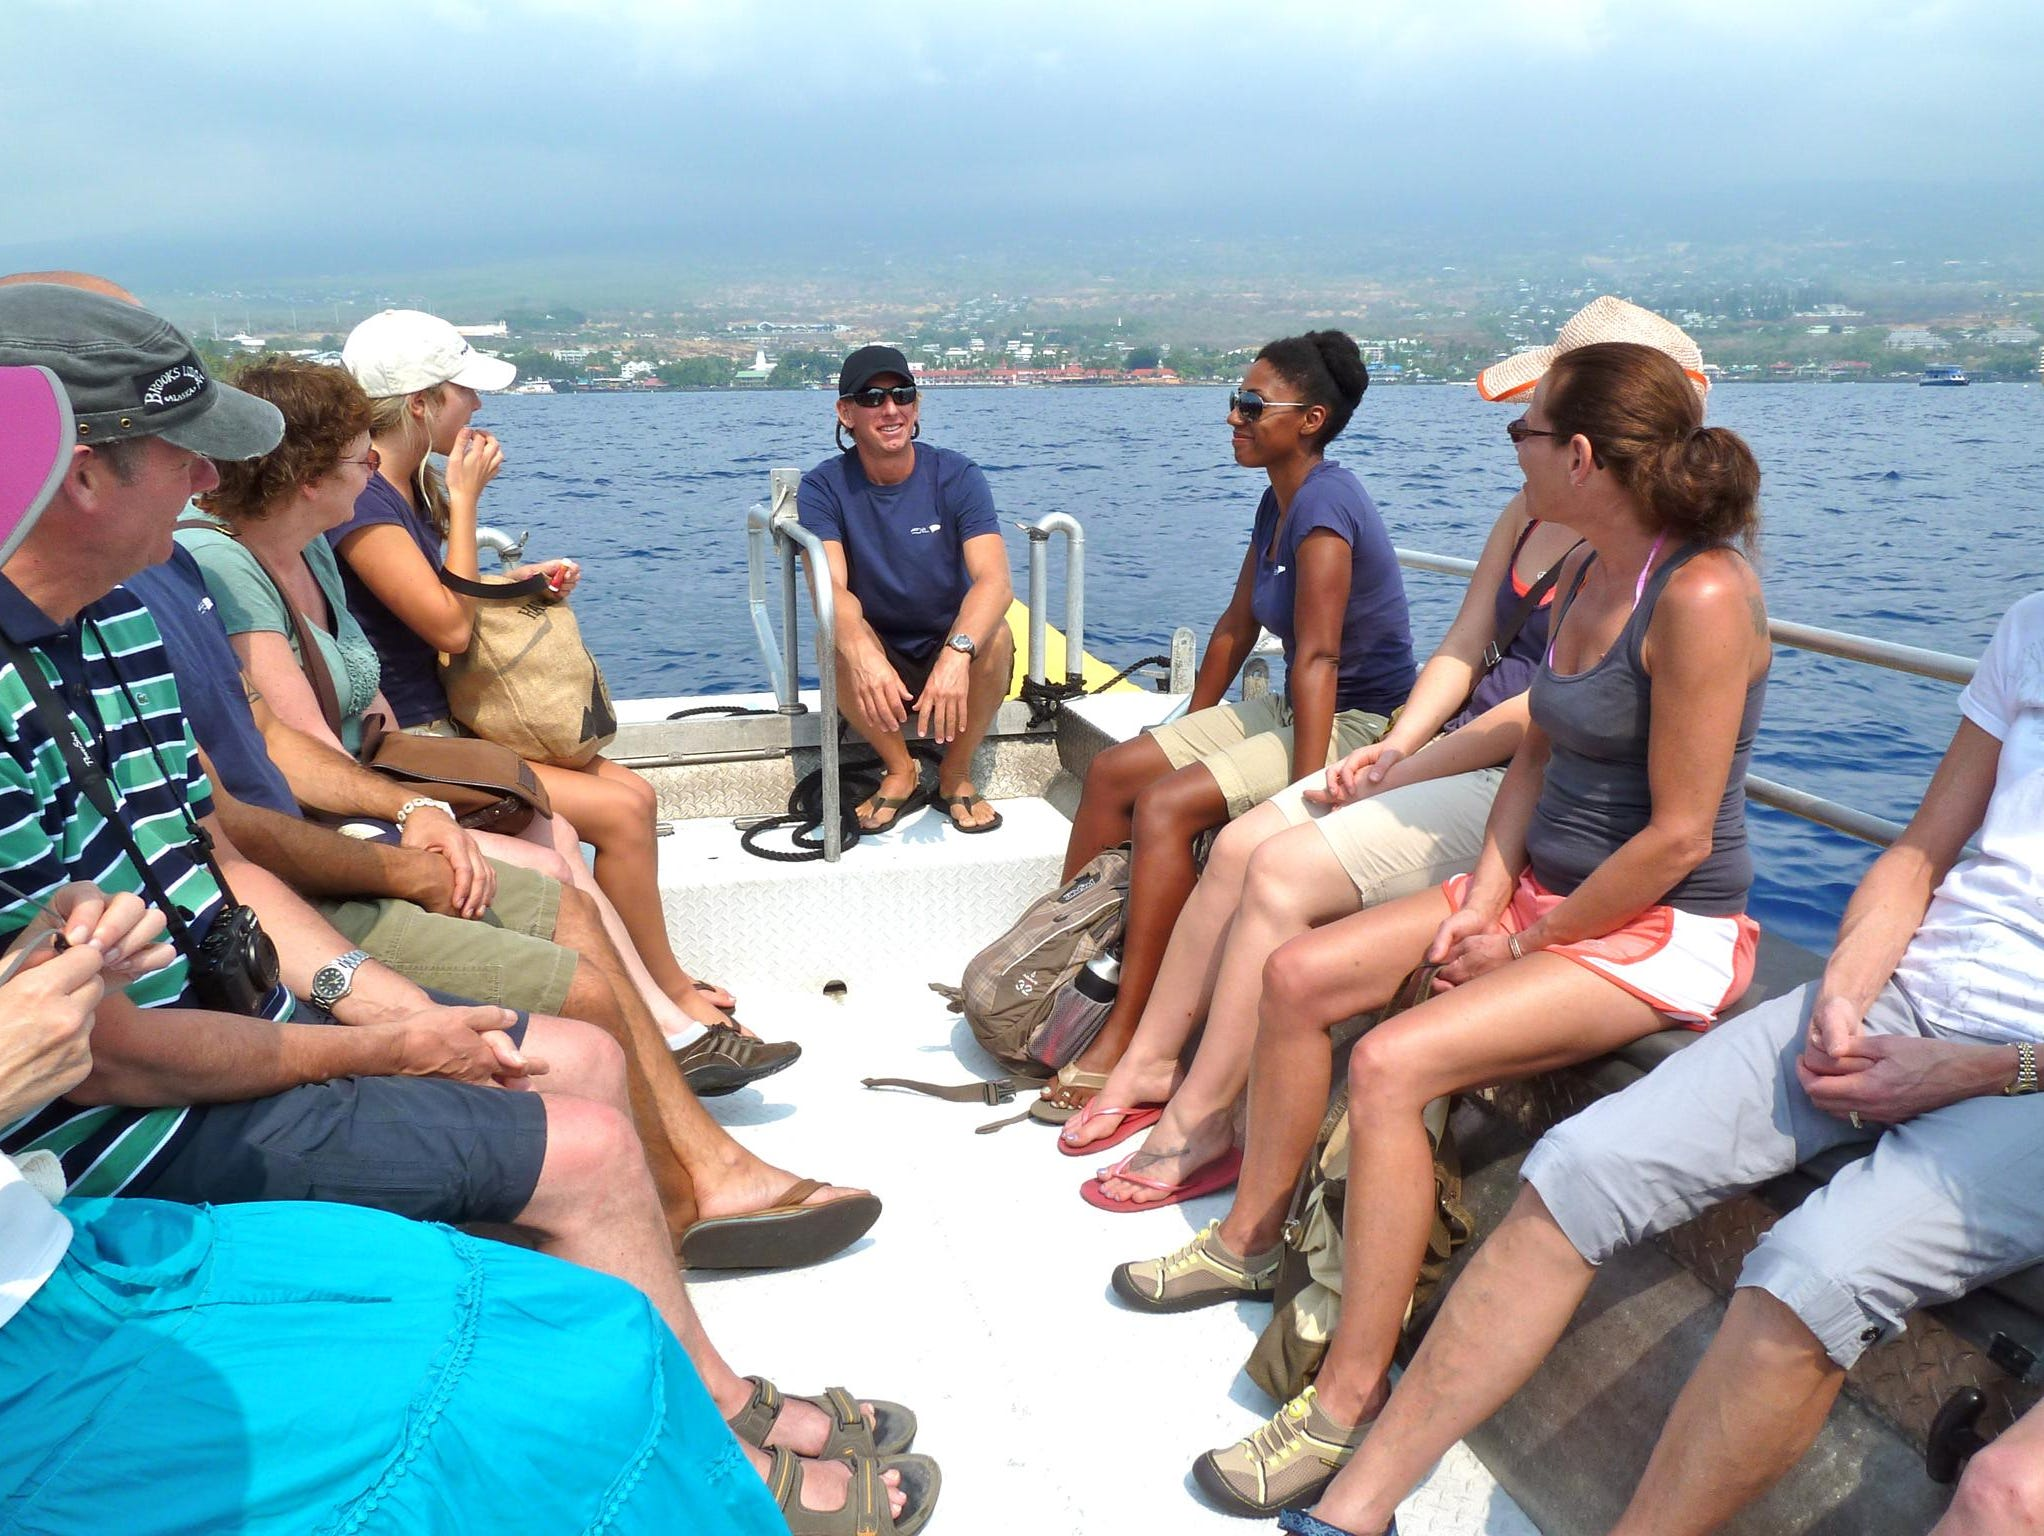 Naturalists are always on hand to explain the flora and fauna as well as the culture and history of places the Safari Explorer visits. Most excursions such as skiff rides, snorkeling, kayaking, hikes and island tours are included in the fare.